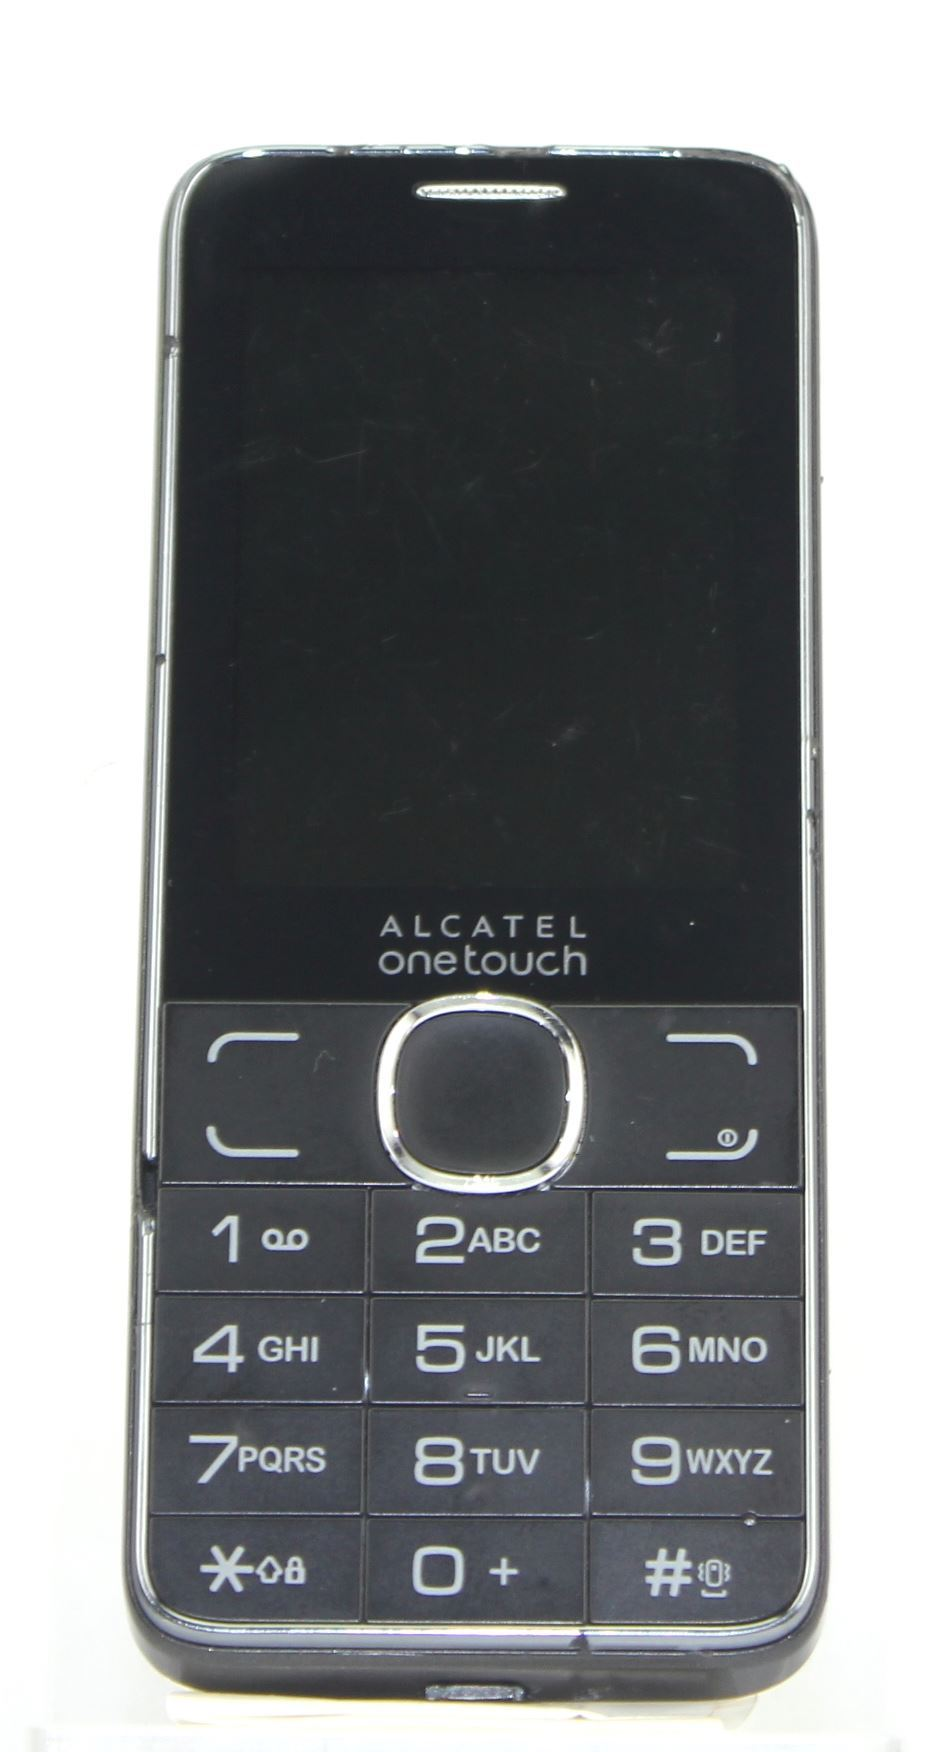 Operating instructions for alcatel mobile phone